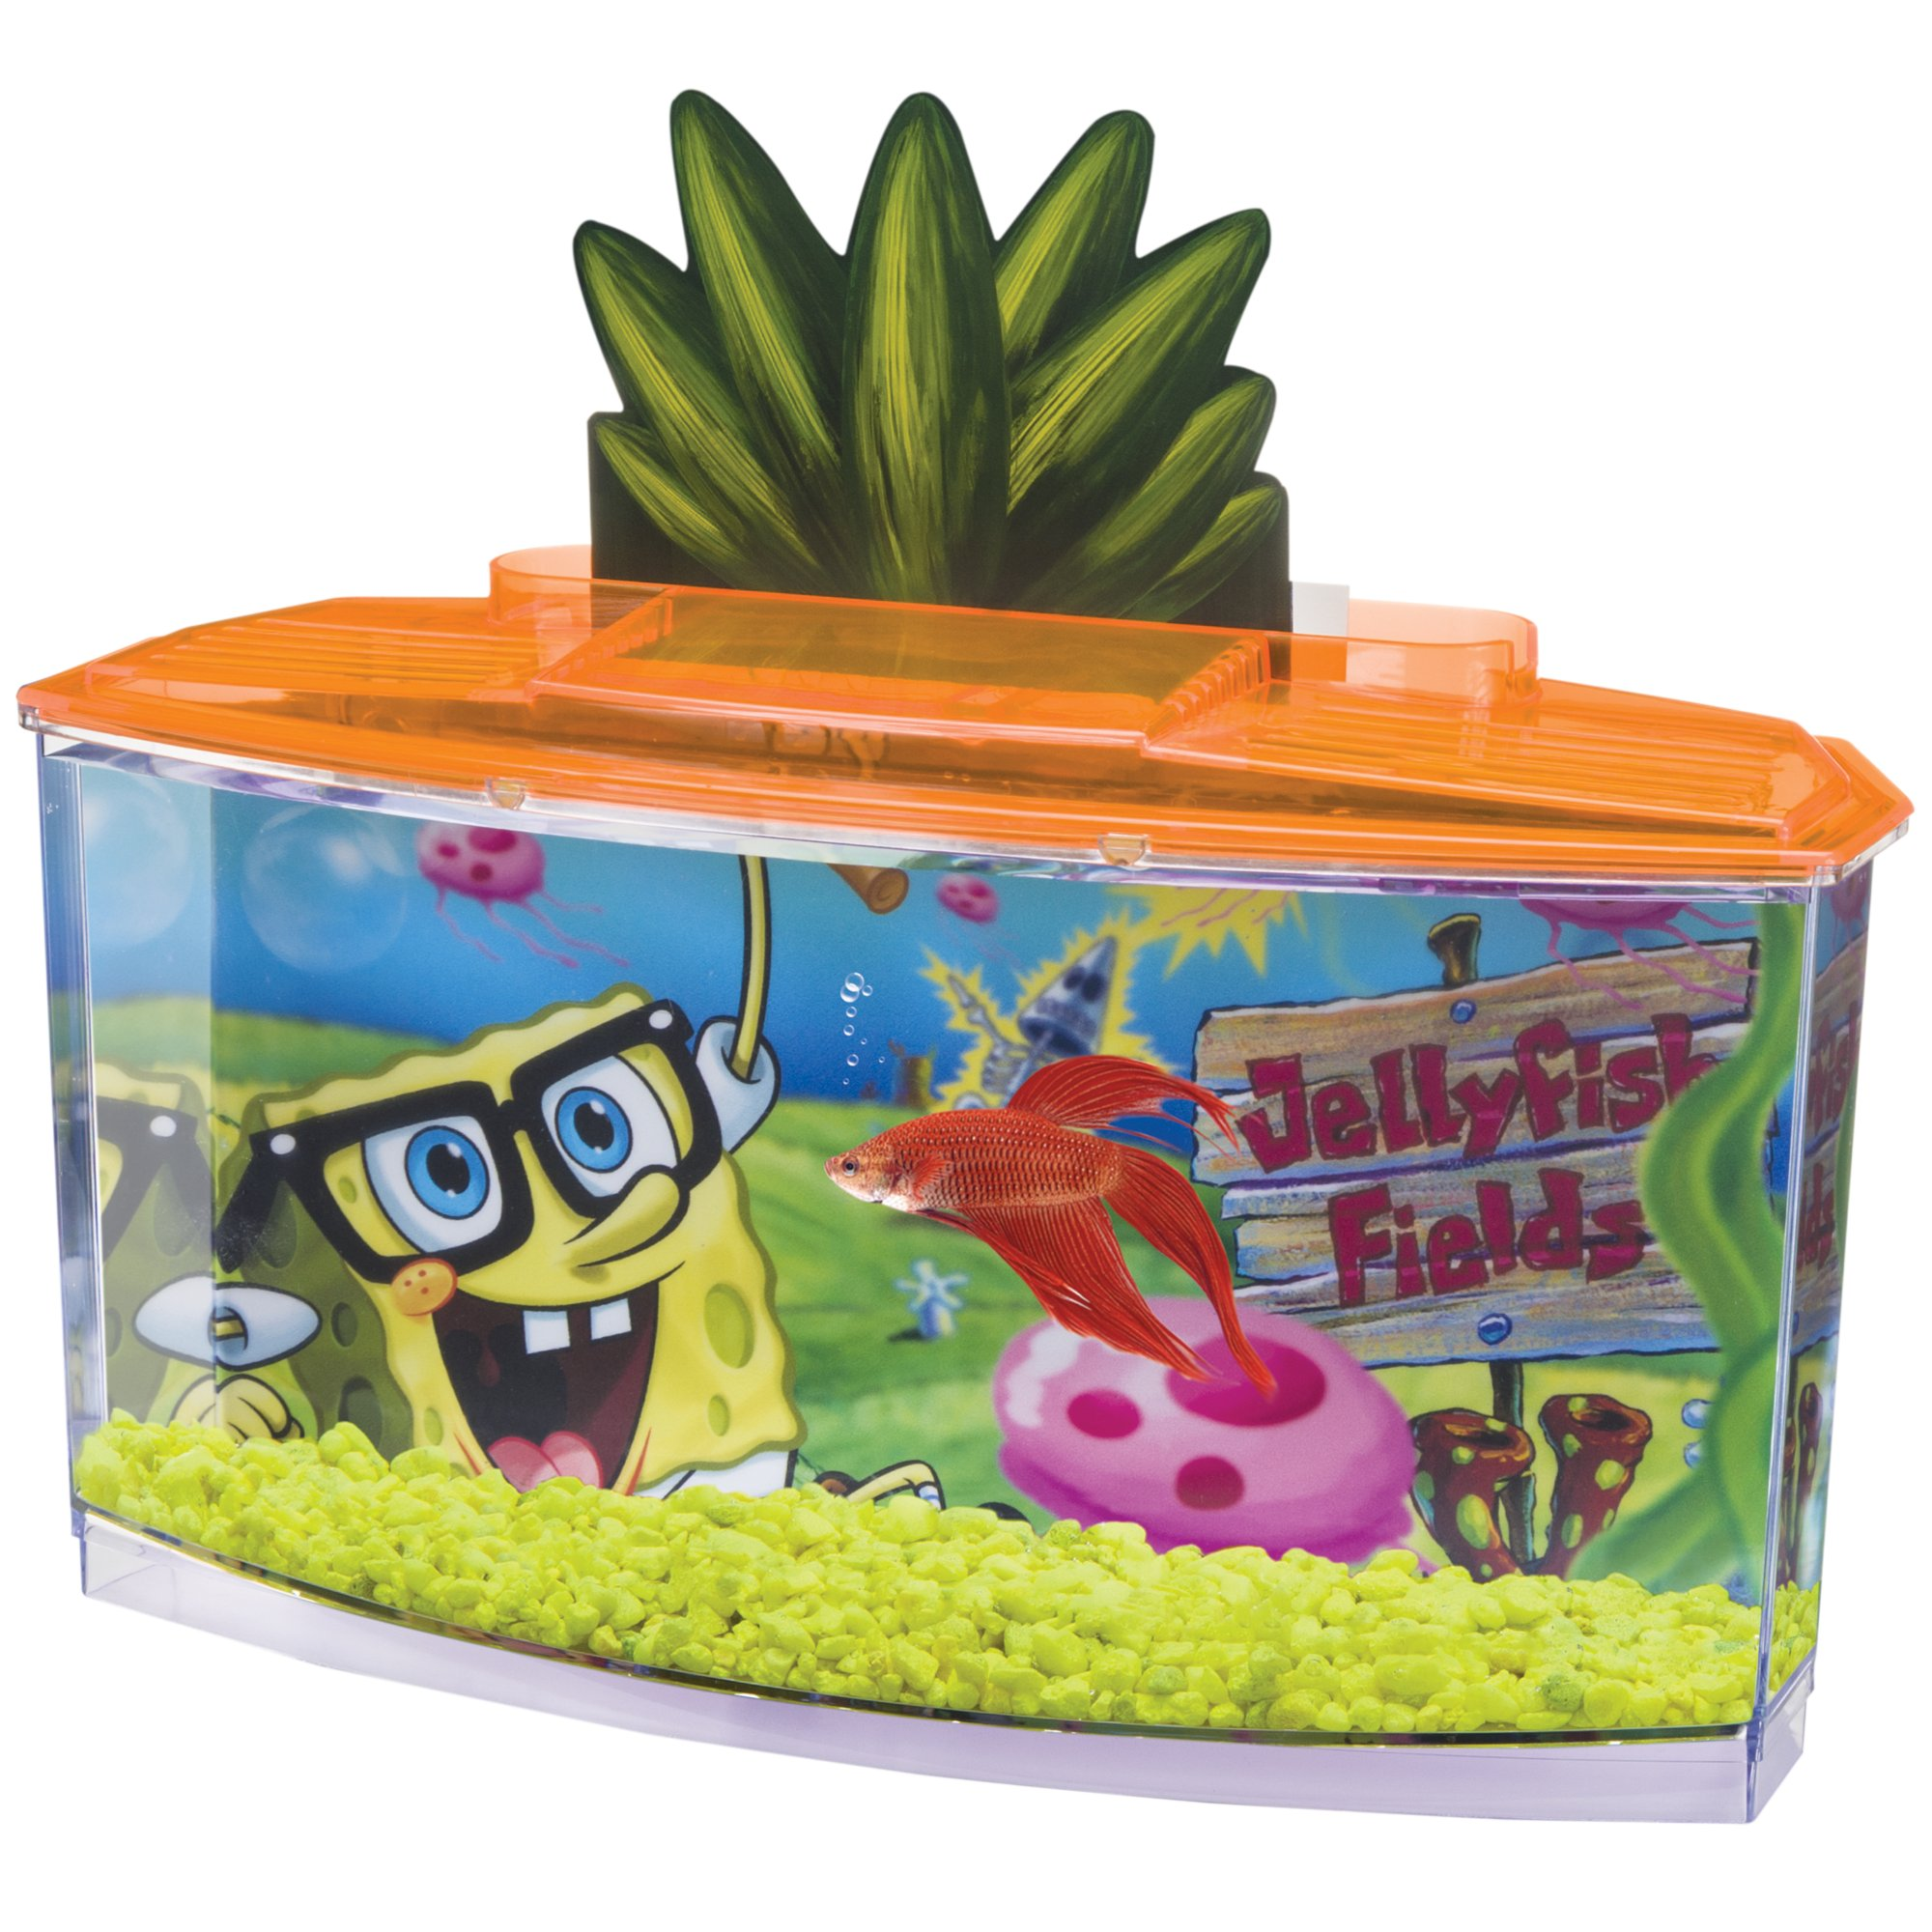 Penn Plax SpongeBob Squarepants Betta Aquarium Kit, 0.7 Gallon